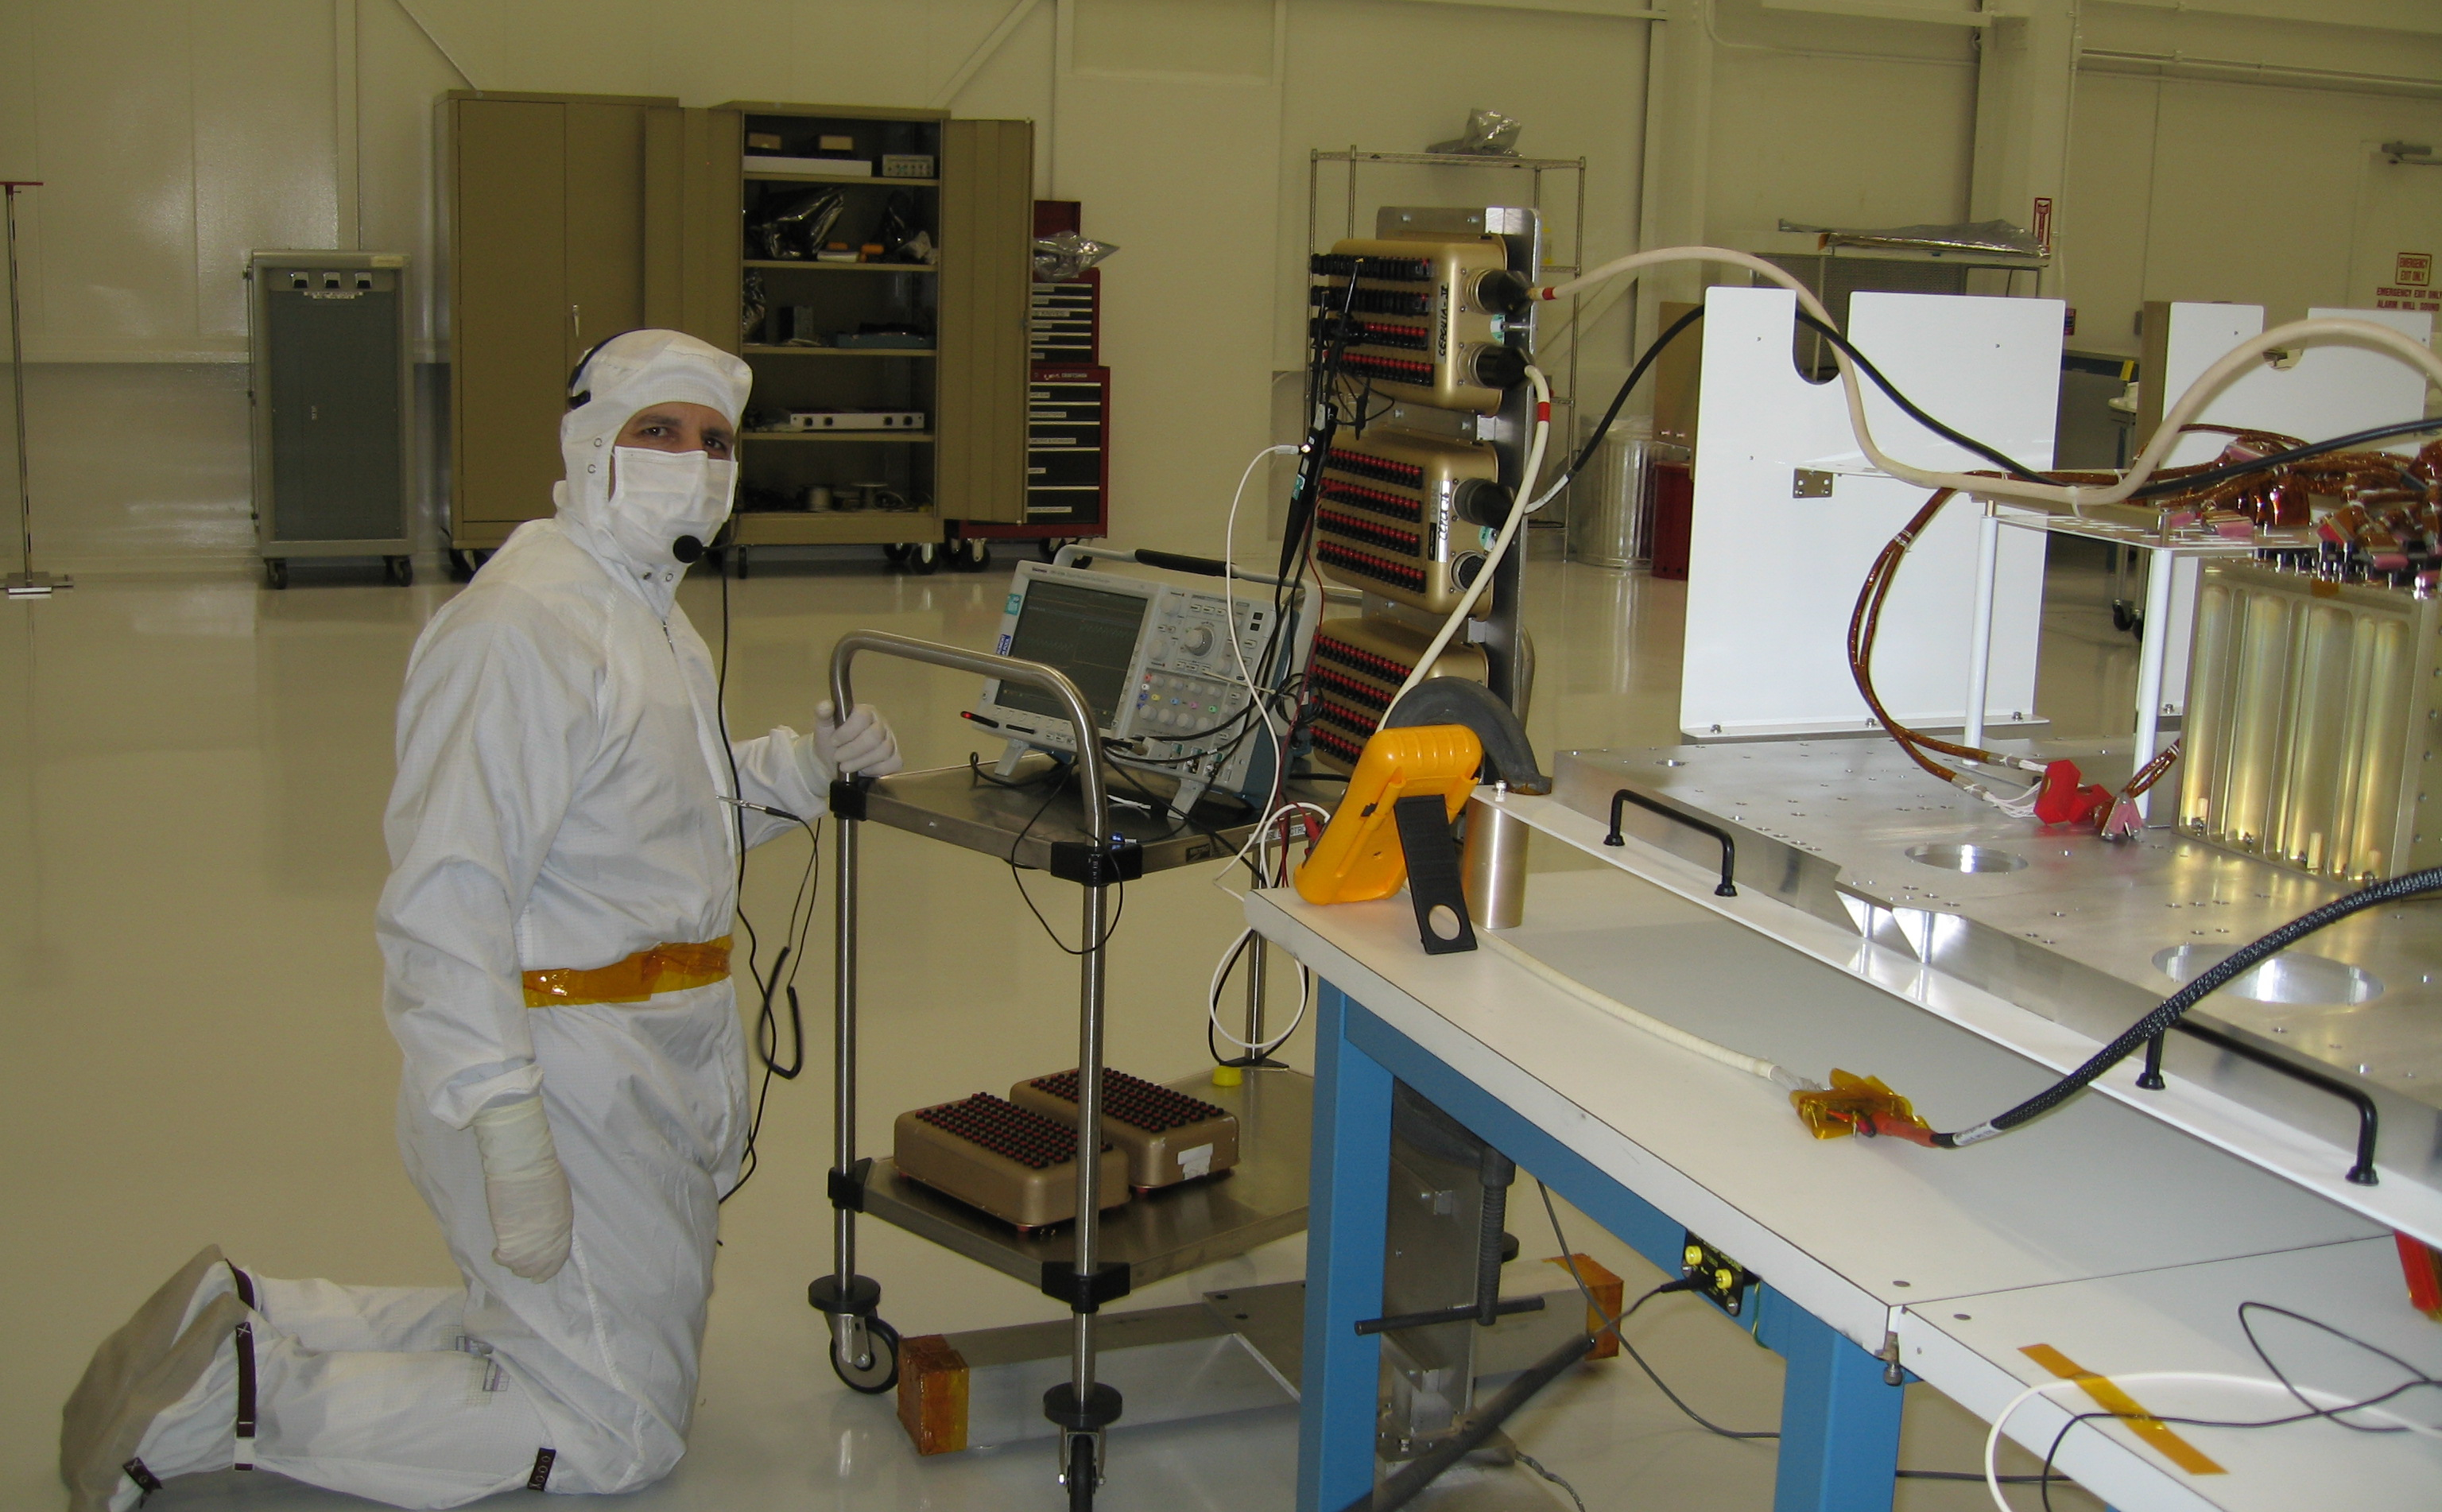 This image was taken inside a large 'clean room,' where ATLO (Assembly, Testing, and Launch Operations) is taking place for the Mars Science Laboratory mission. In the foreground on the right are electronic components and to the left is a man leaning over the components. He is dressed in all white protective clothing, including a face mask and gloves.